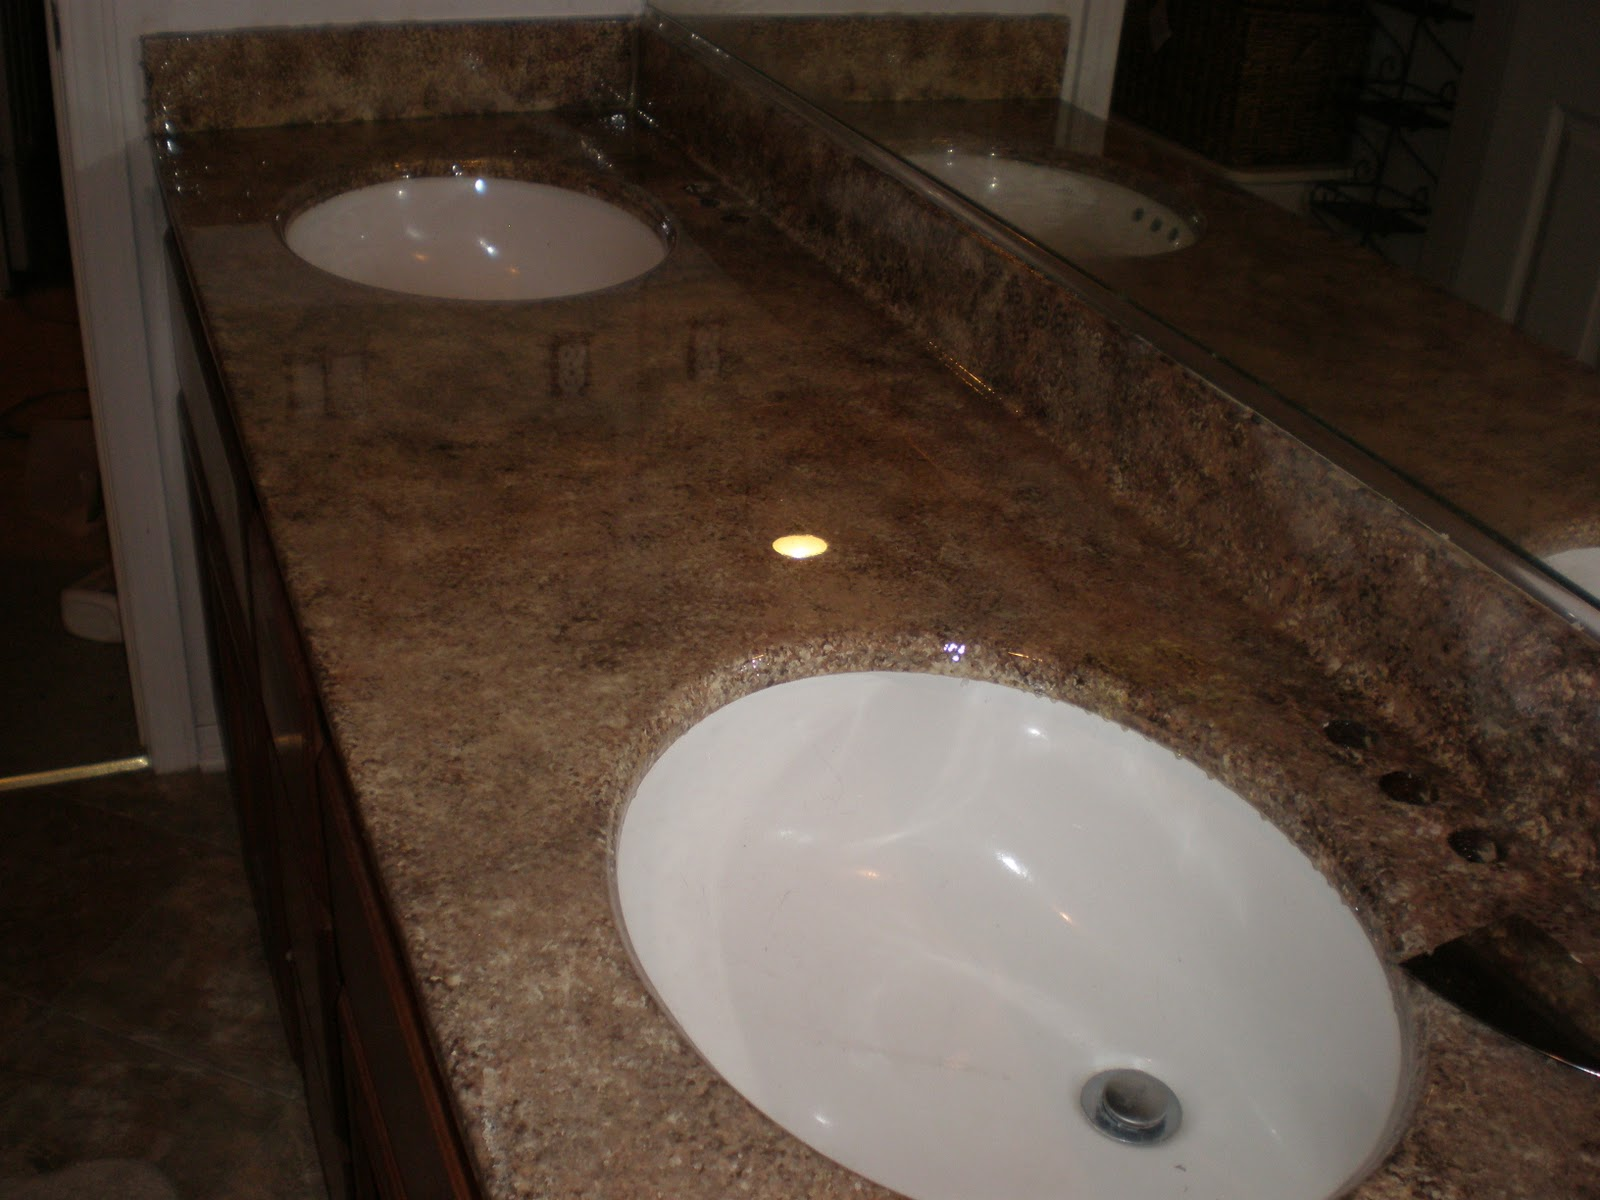 How to paint bathroom countertops - Faux Granite Countertop For Less Than 25 Bucks